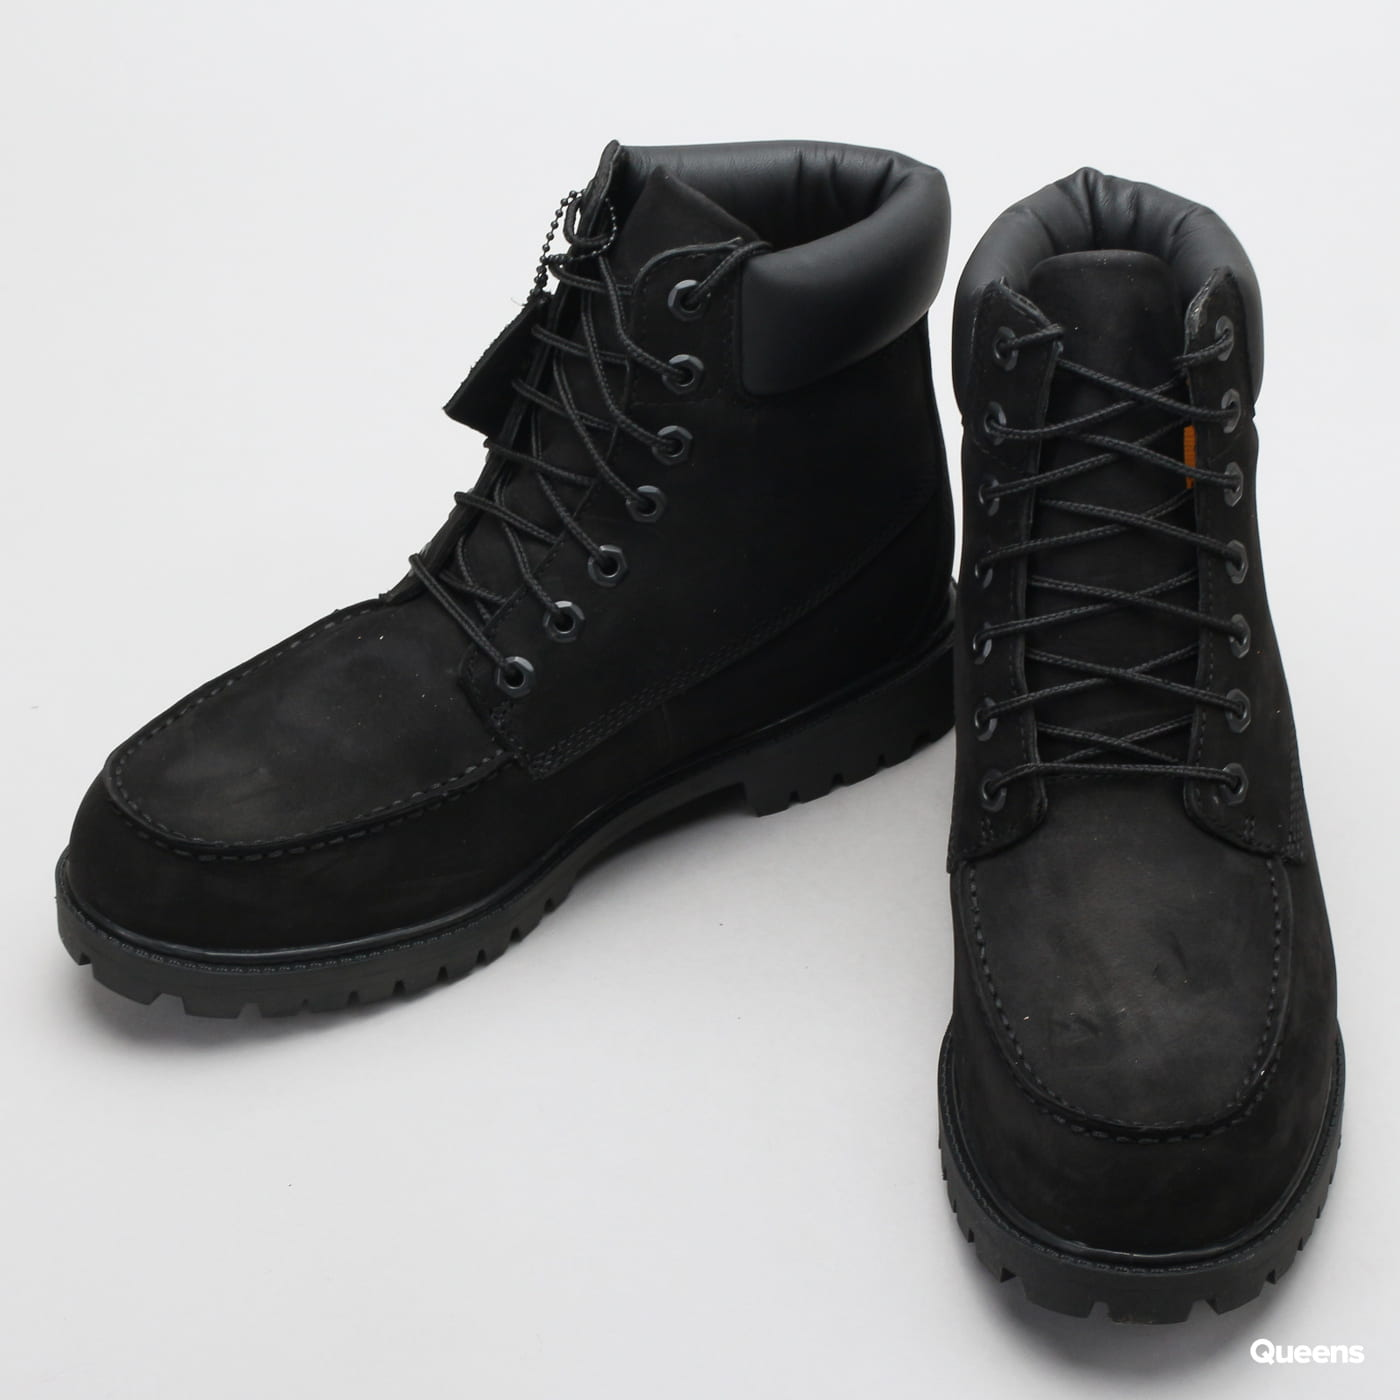 Timberland 6 in Premium WP MT Boot black waterbuck